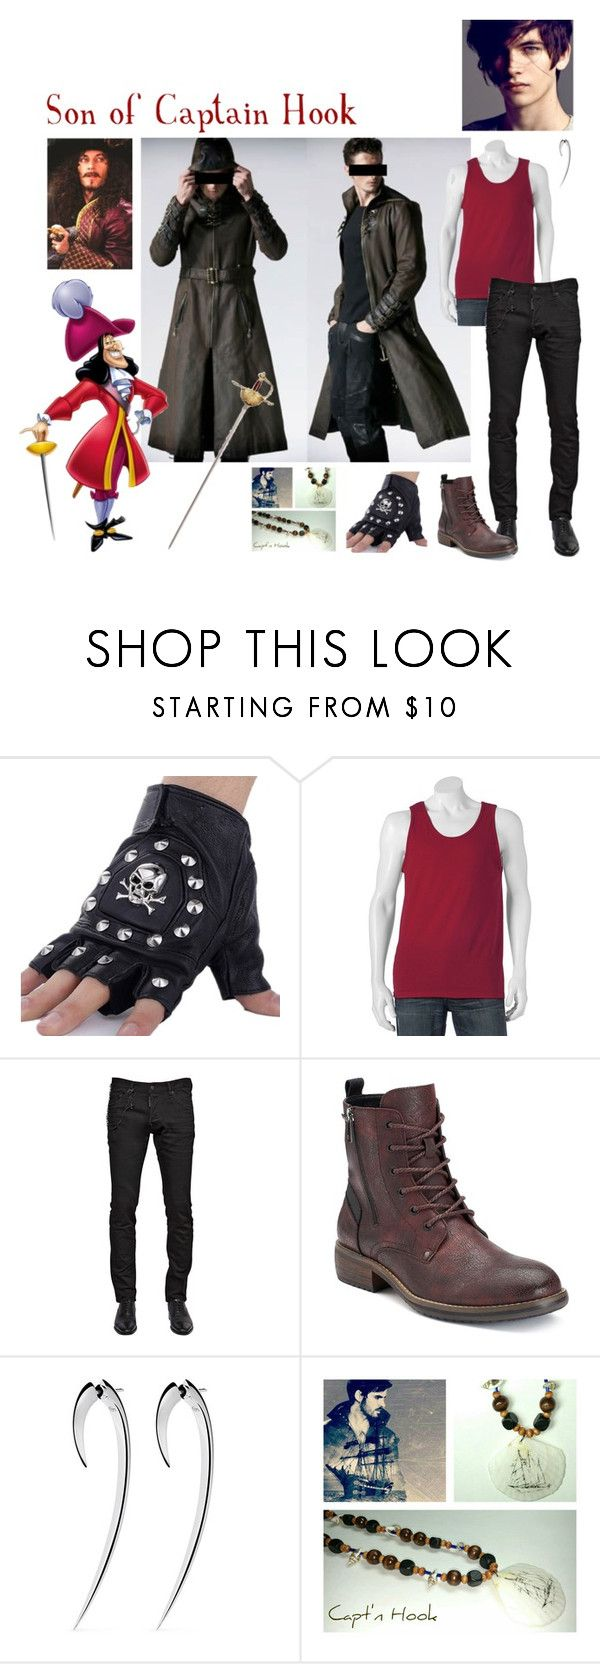 """""""Jason James Hook: Son of Captain James Hook (New Descendants OC)"""" by mjzahner ❤ liked on Polyvore featuring Dsquared2, Shaun Leane, men's fashion and menswear"""